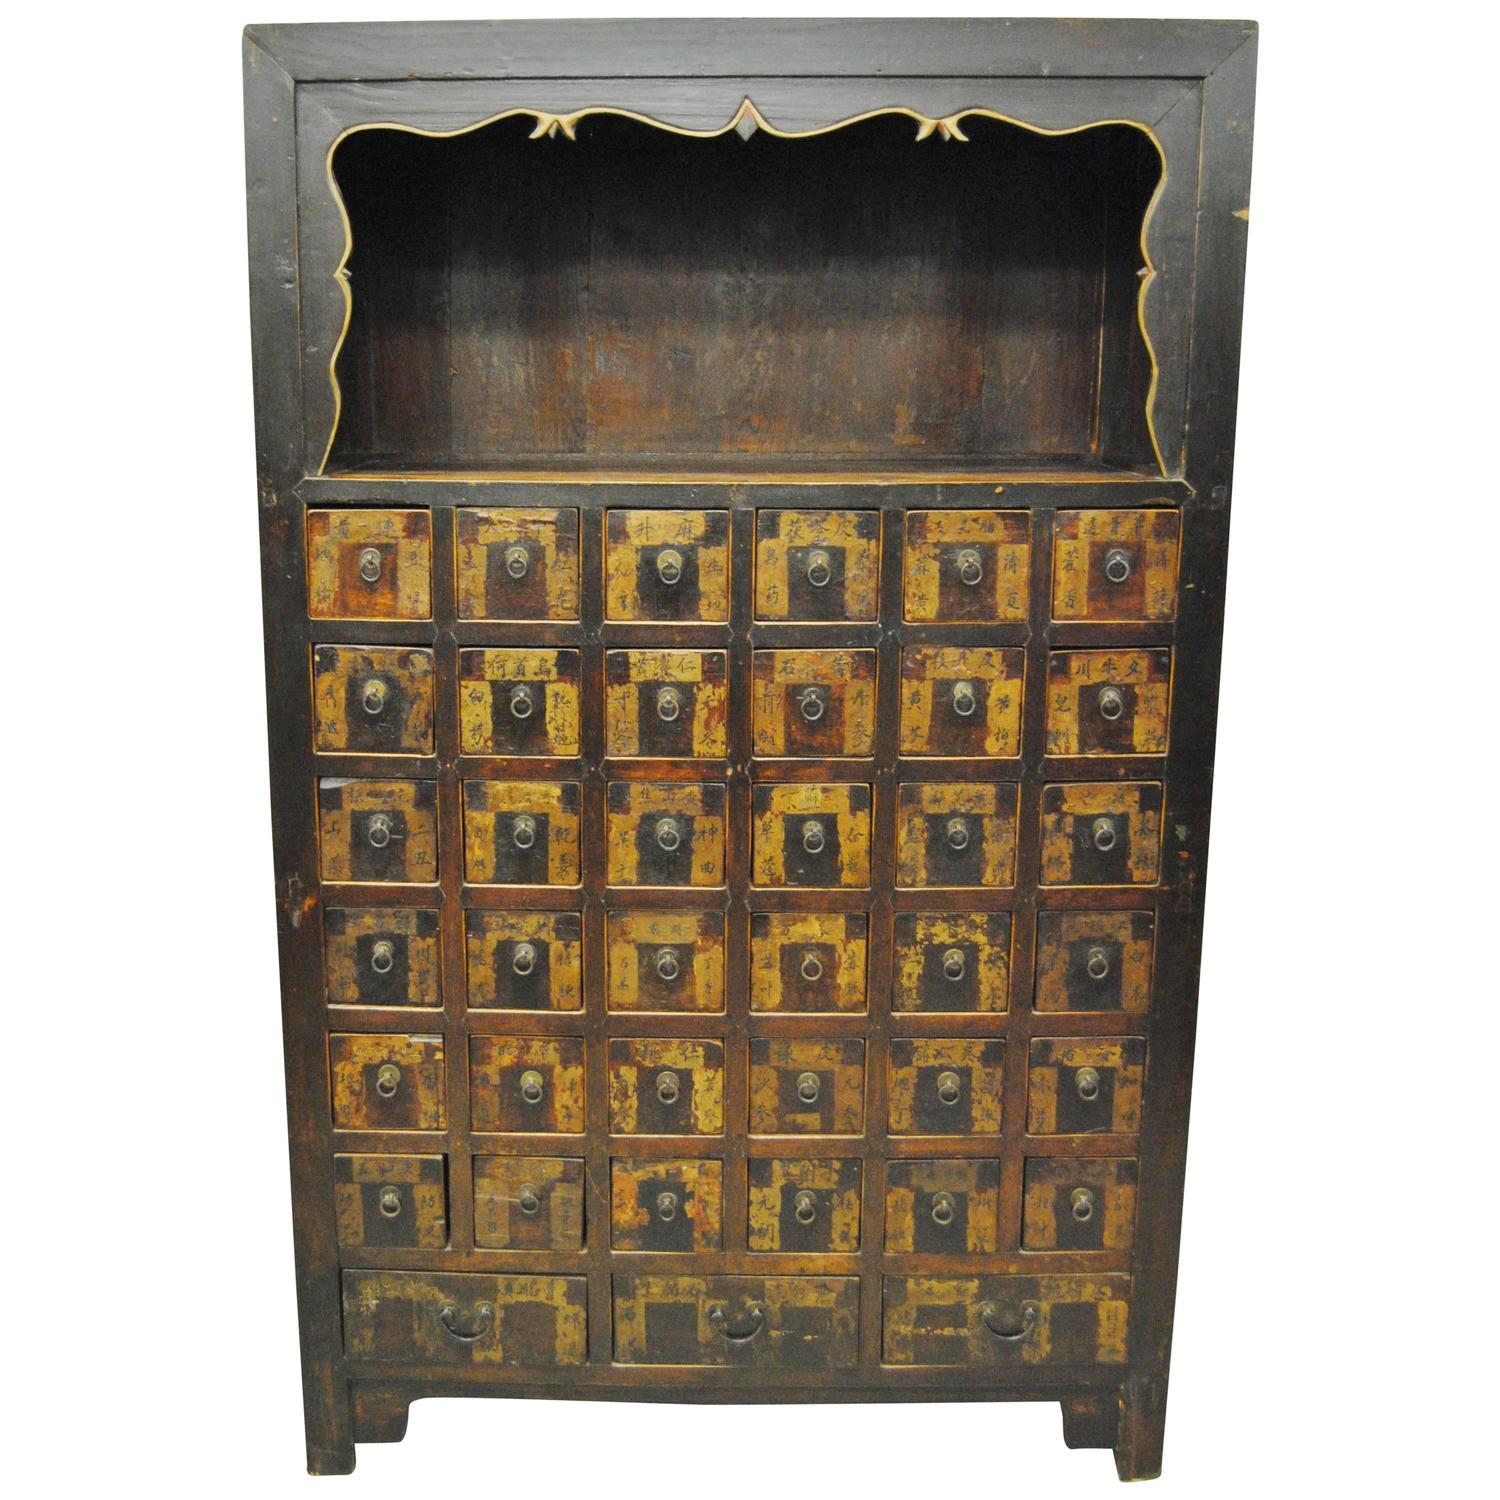 Large Antique Chinese Apothecary, Shanxi Province, Late 19th Century - Antique Asian Furniture - 1,874 For Sale At 1stdibs